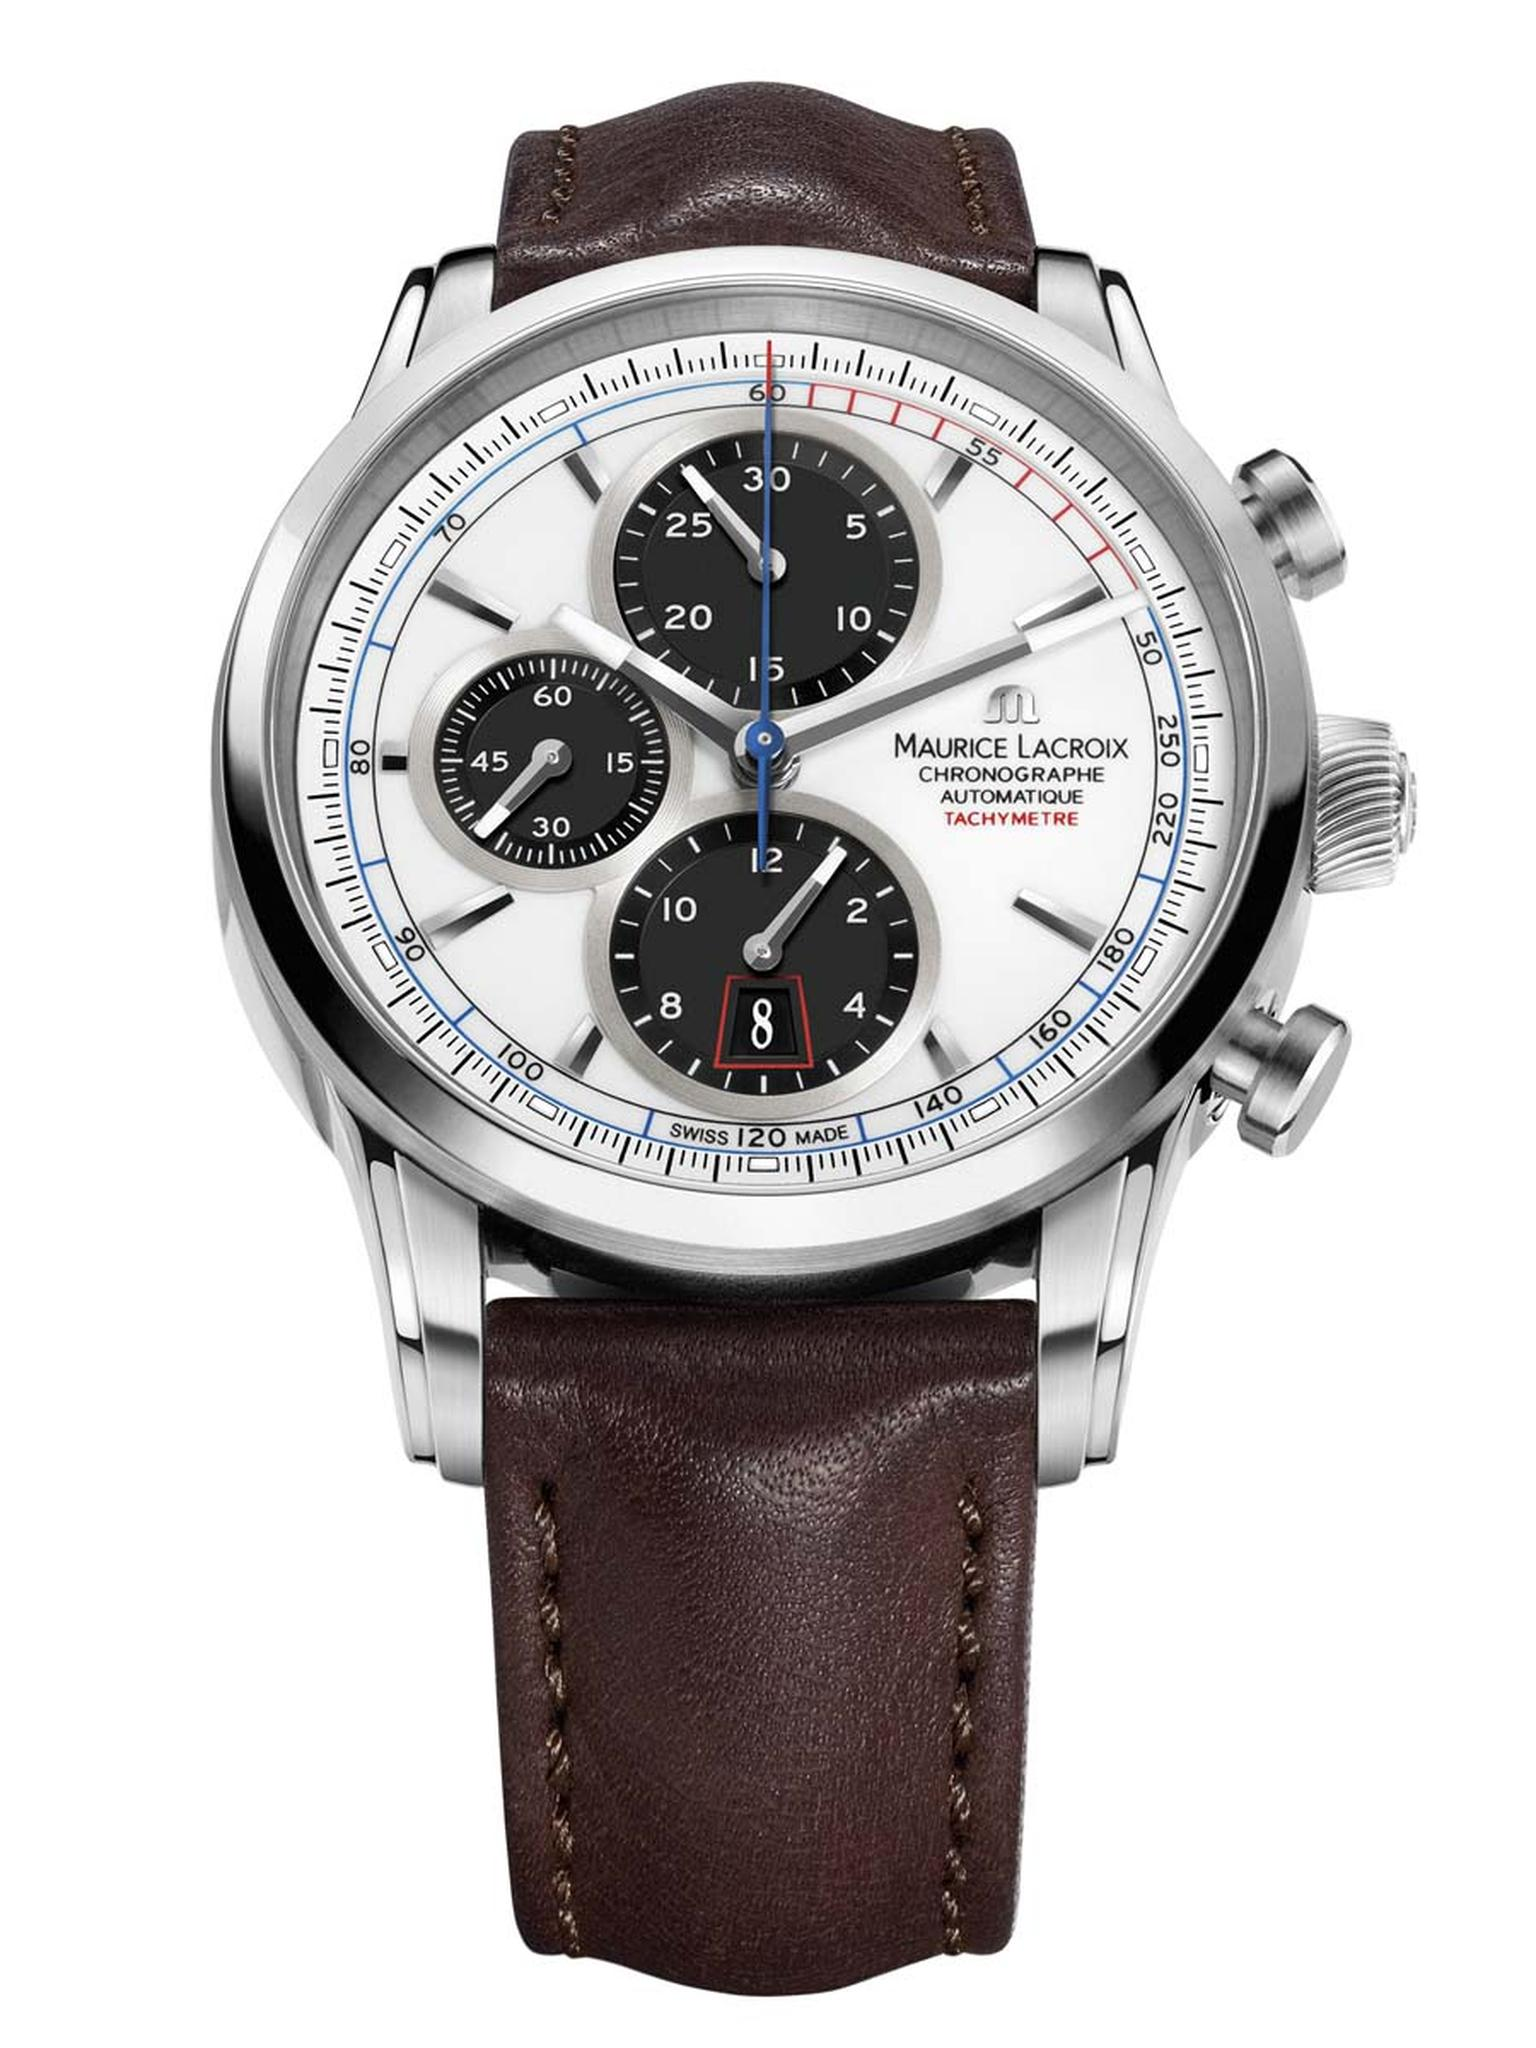 The trend for chronographs continues at Baselworld